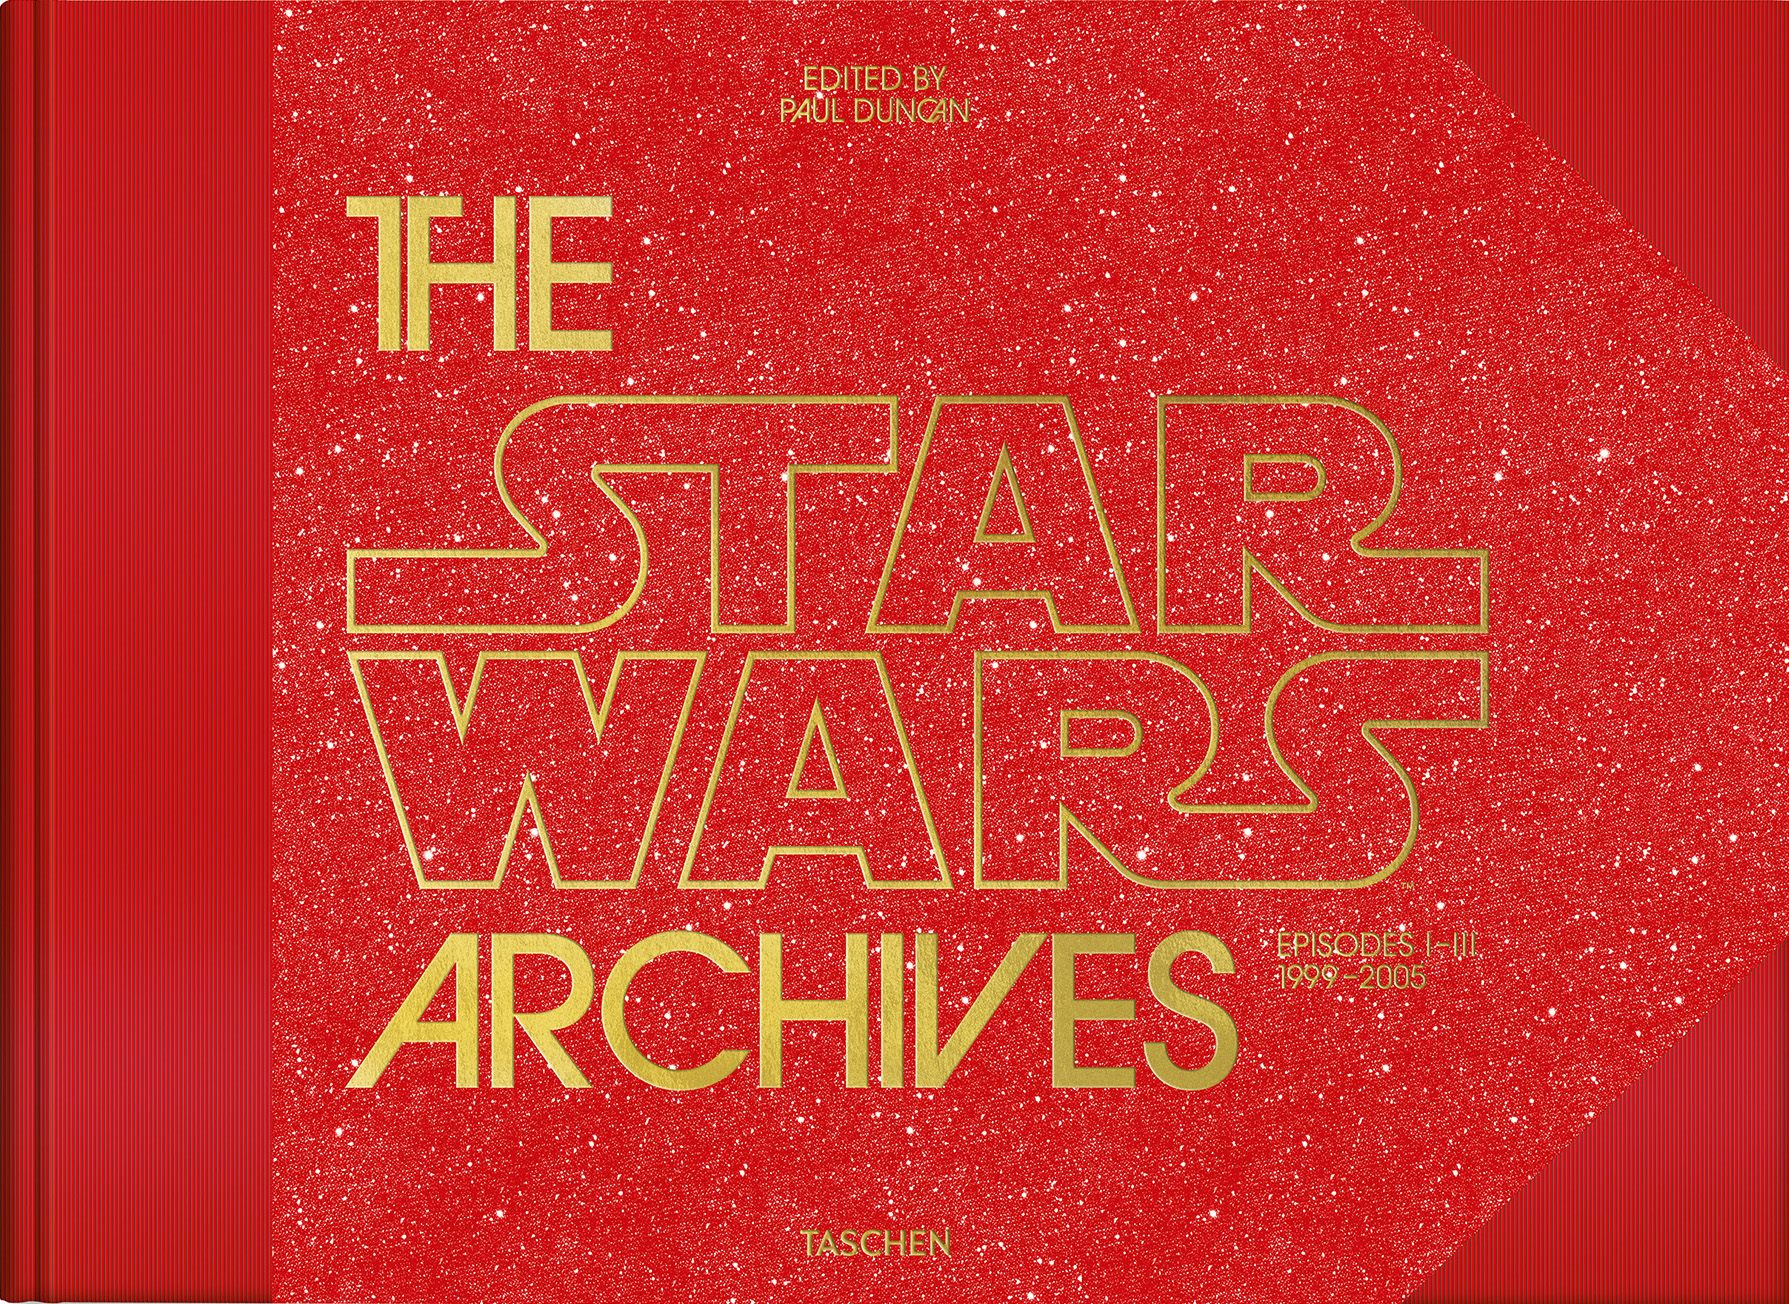 The Star Wars Archives: Episodes I-III